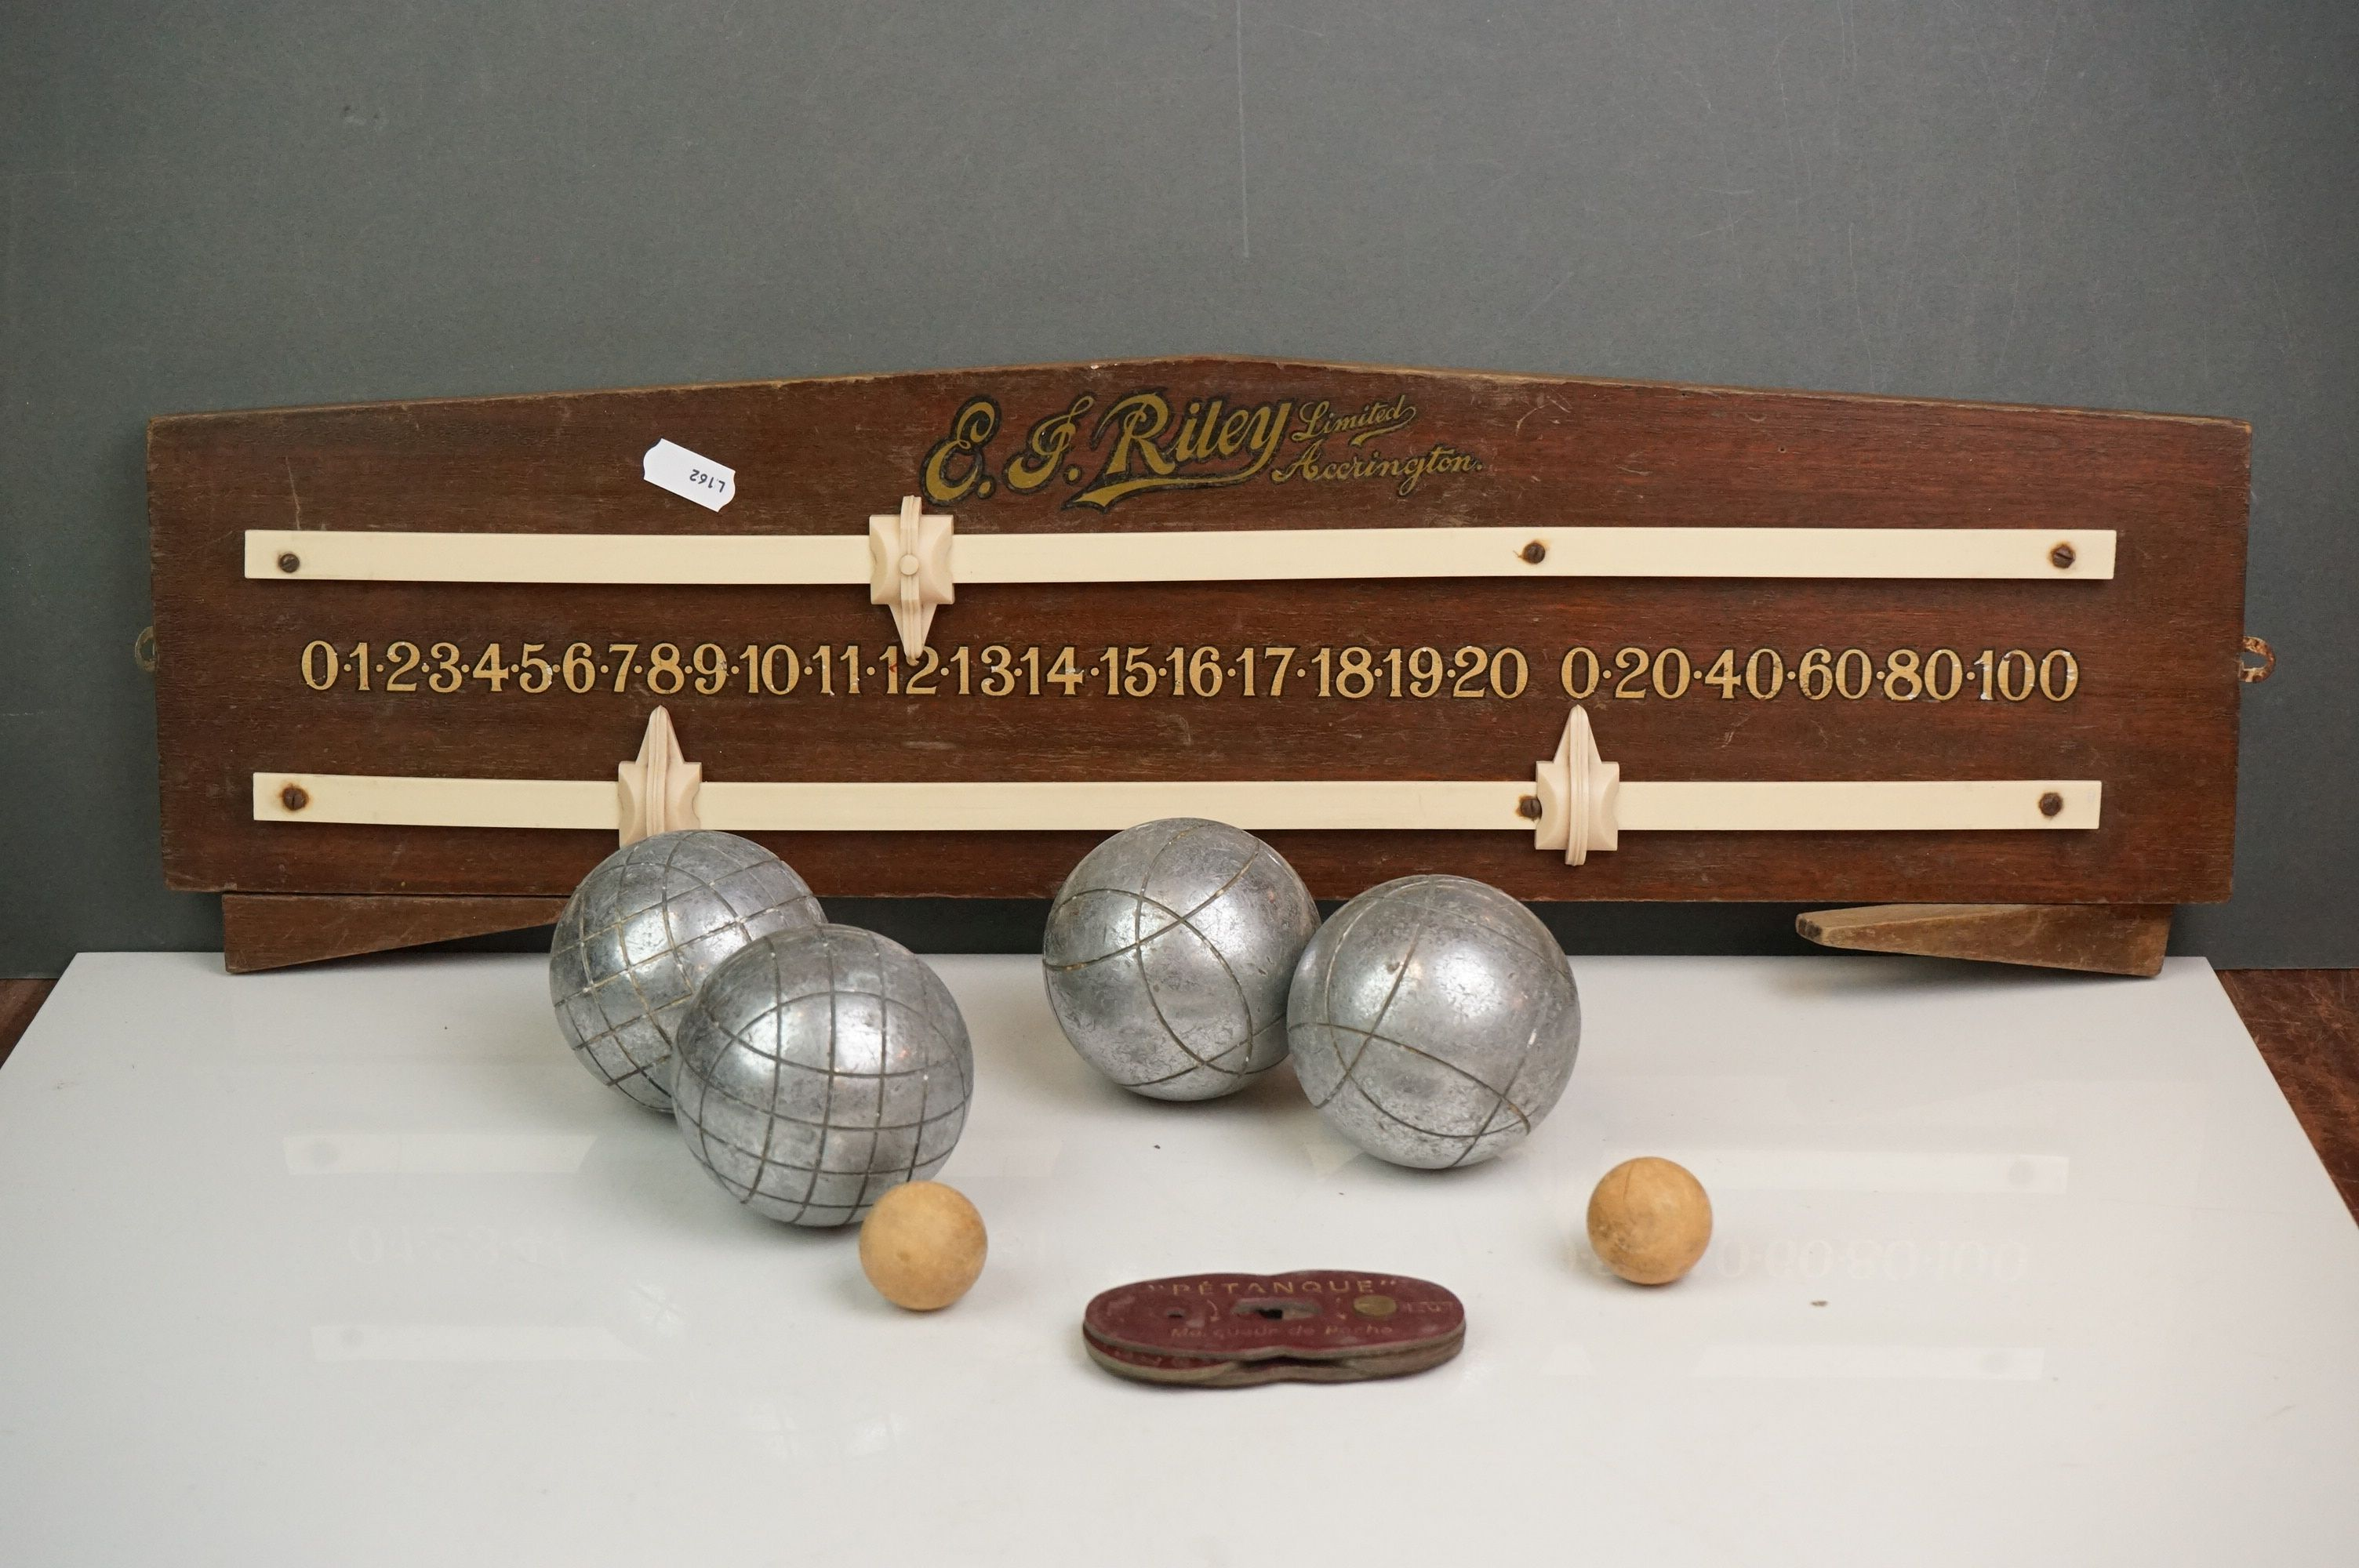 A vintage Riley snooker / billiards score board together with two boxed sets of boules.